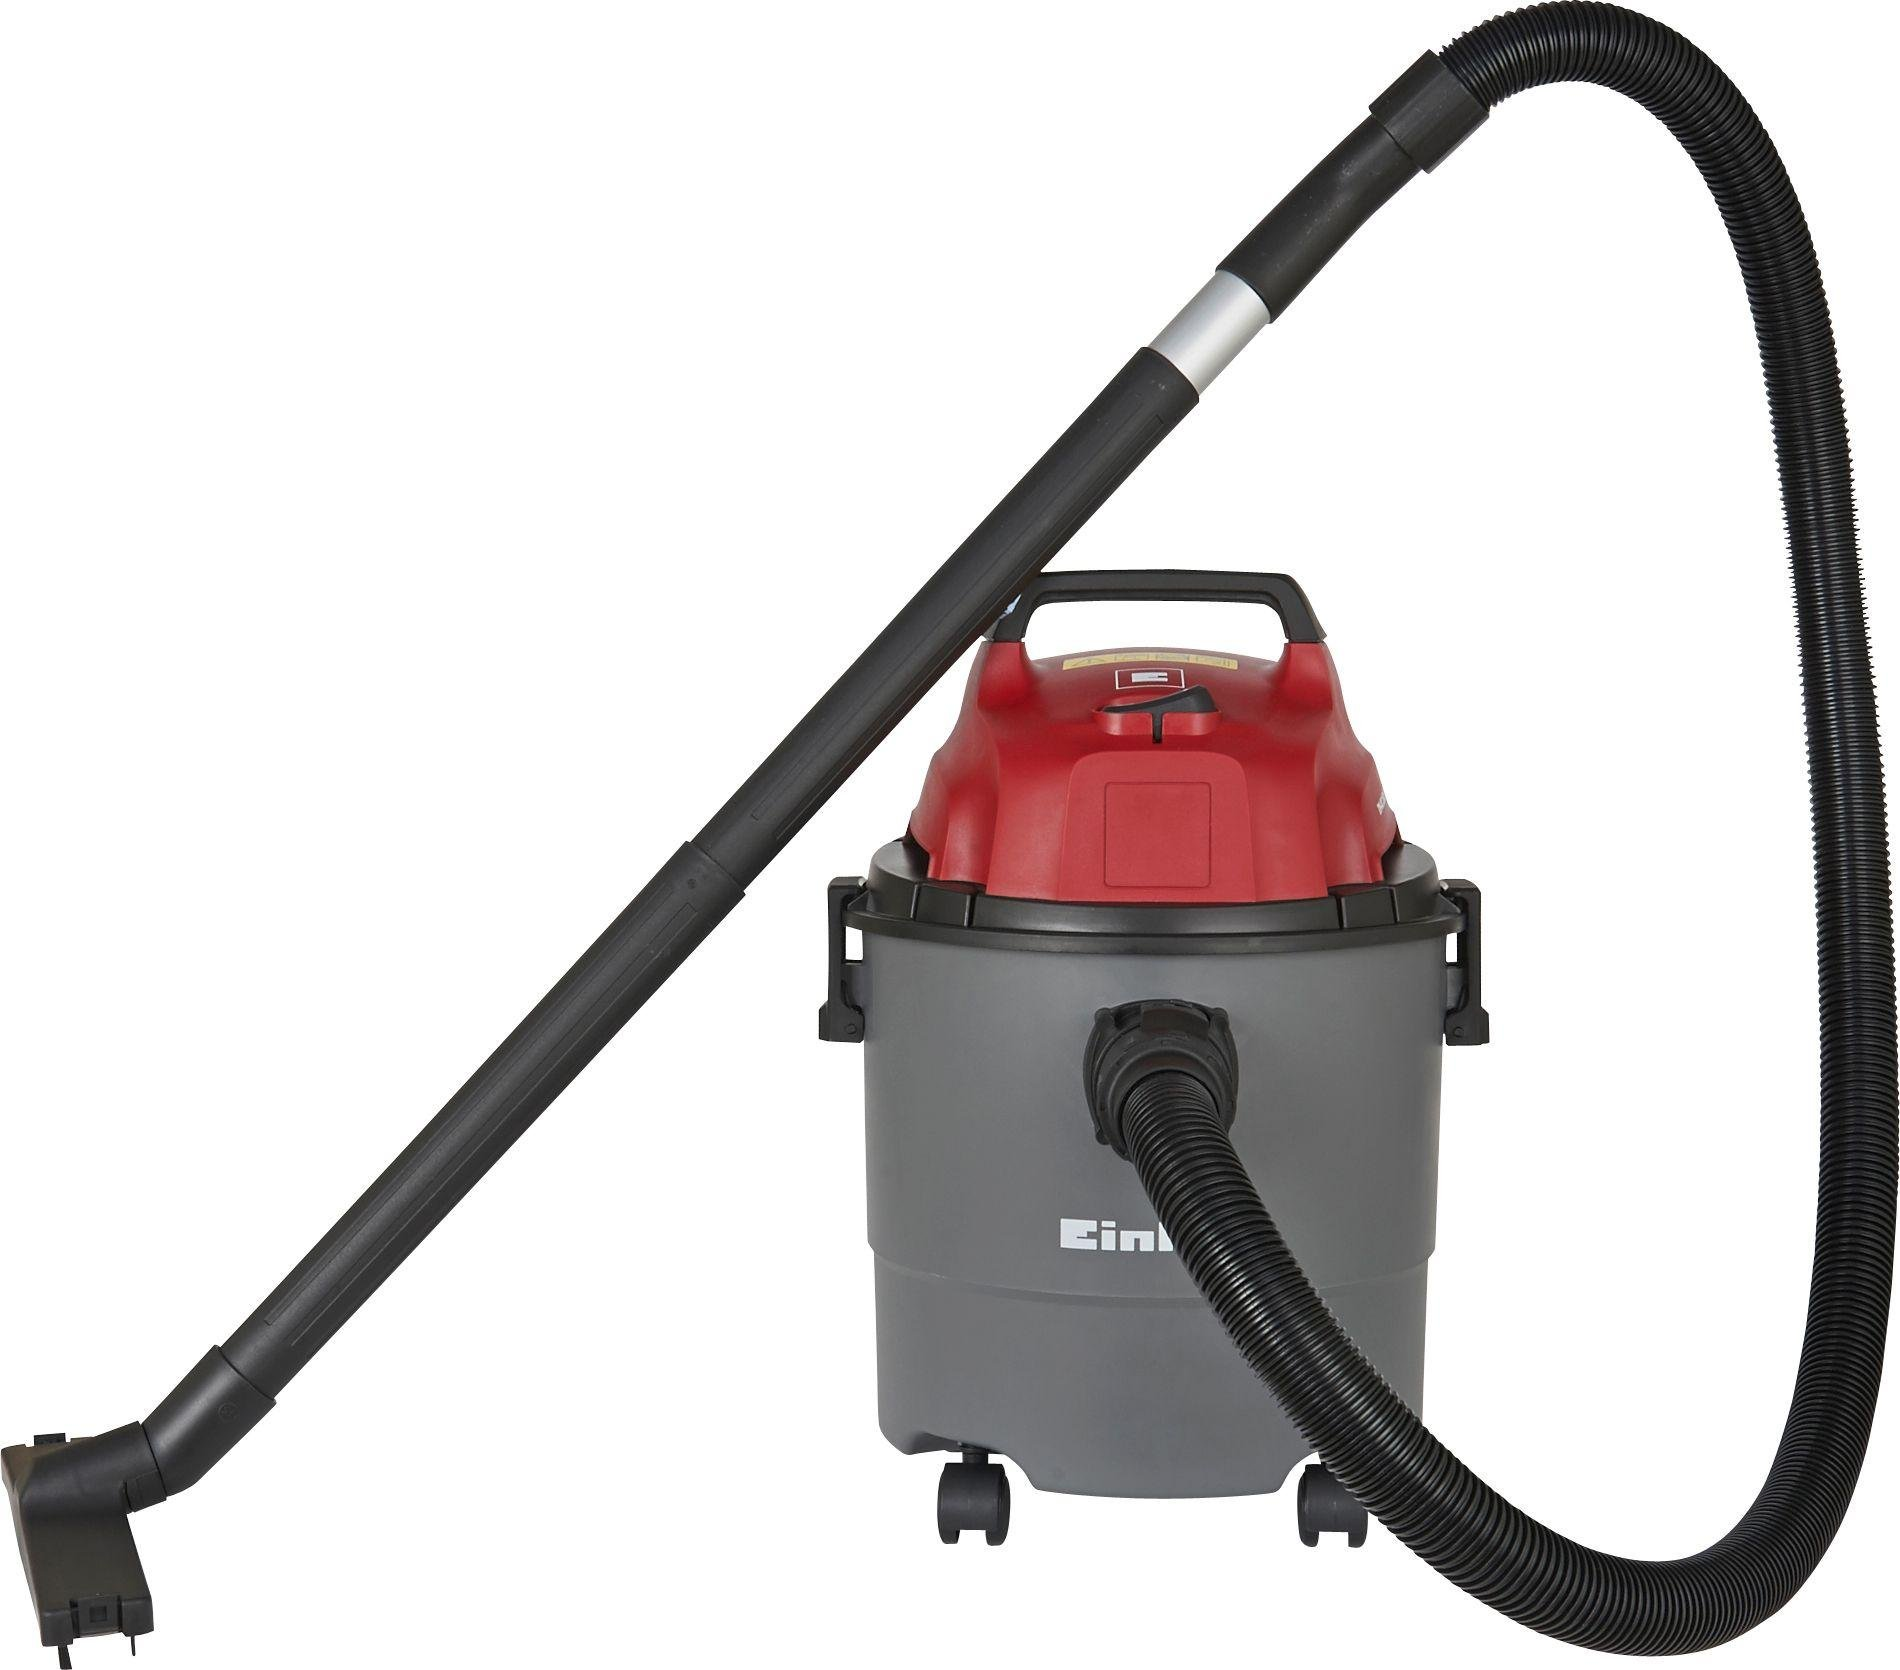 Carpet Cleaners Best Buy Carpet Cleaners At Sale Prices